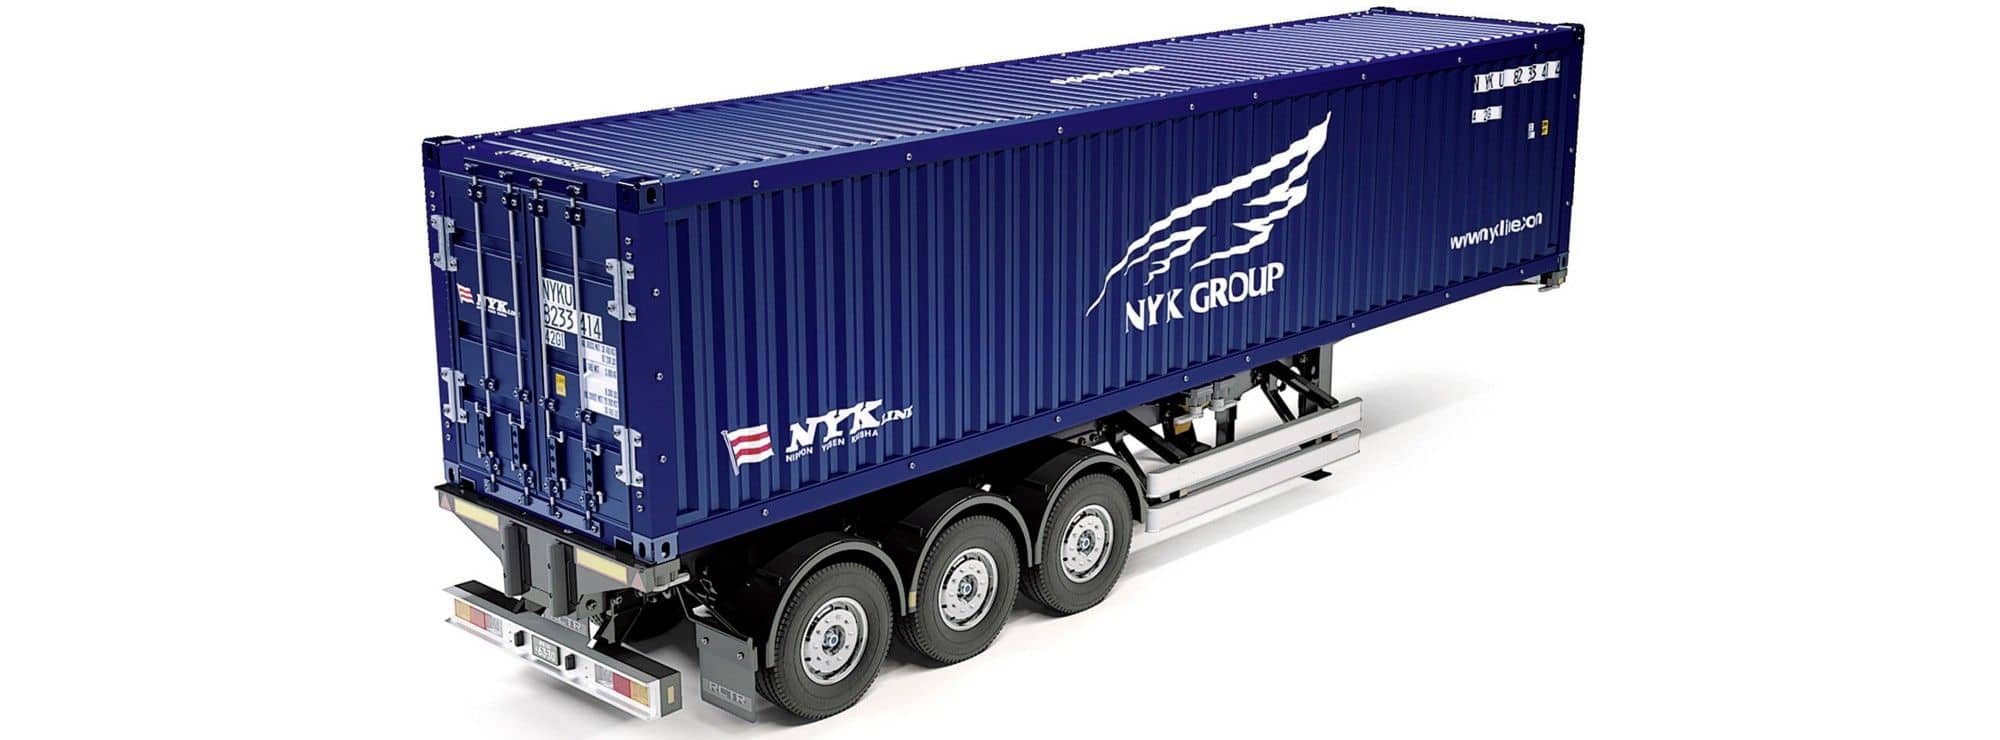 tamiya 56330 40 fu container auflieger nyk 1 14 f r rc truck online kaufen bei modellbau h rtle. Black Bedroom Furniture Sets. Home Design Ideas